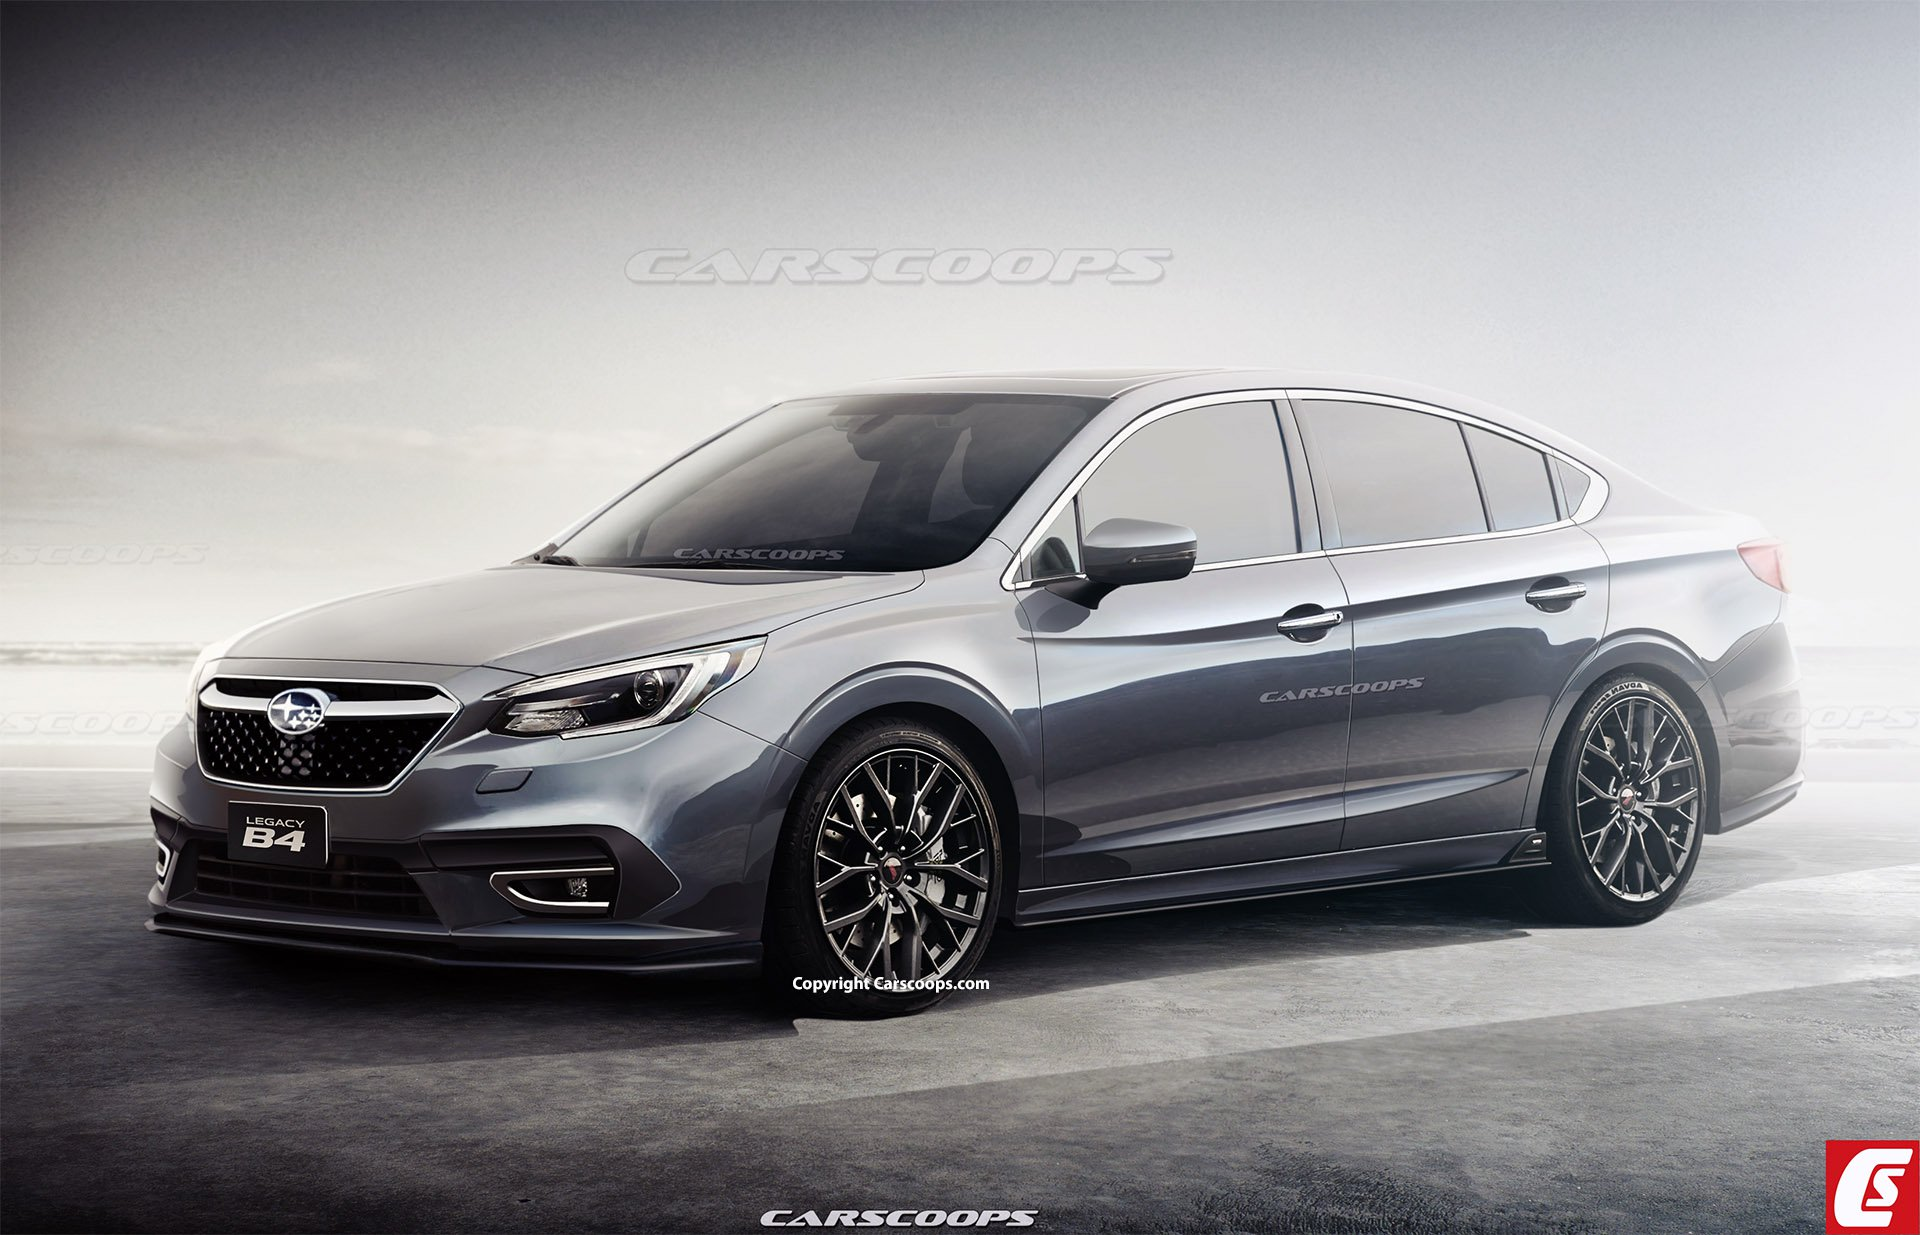 14 All New 2020 Subaru Legacy Release Date and Concept